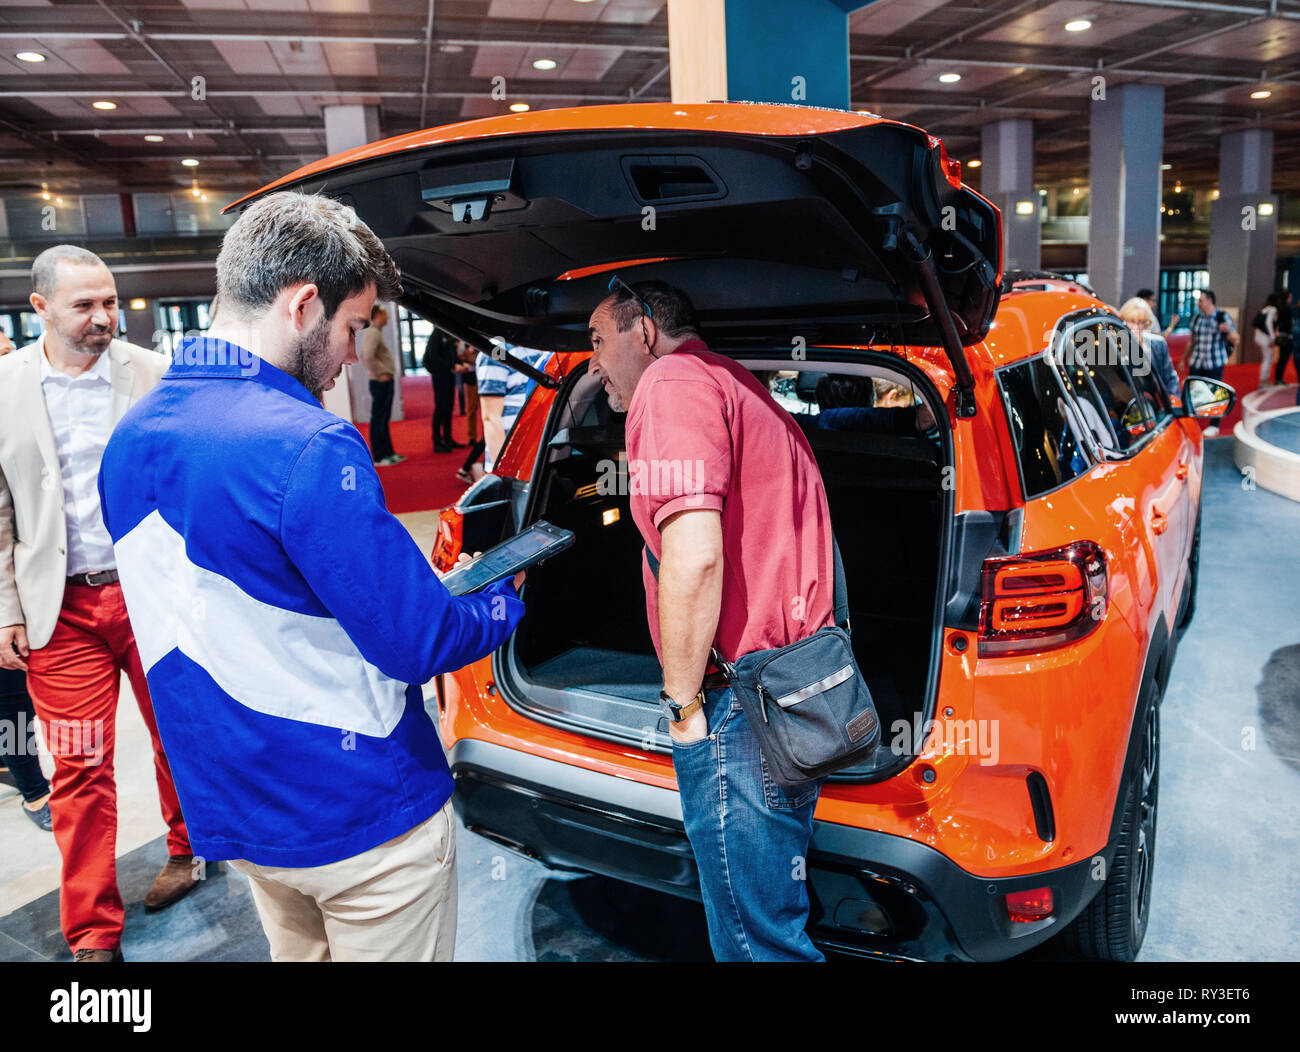 PARIS, FRANCE - OCT 4, 2018: Customers and curious people admiring the new  at International car exhibition Mondial Paris Motor Show, model produced by  car maker - Stock Image